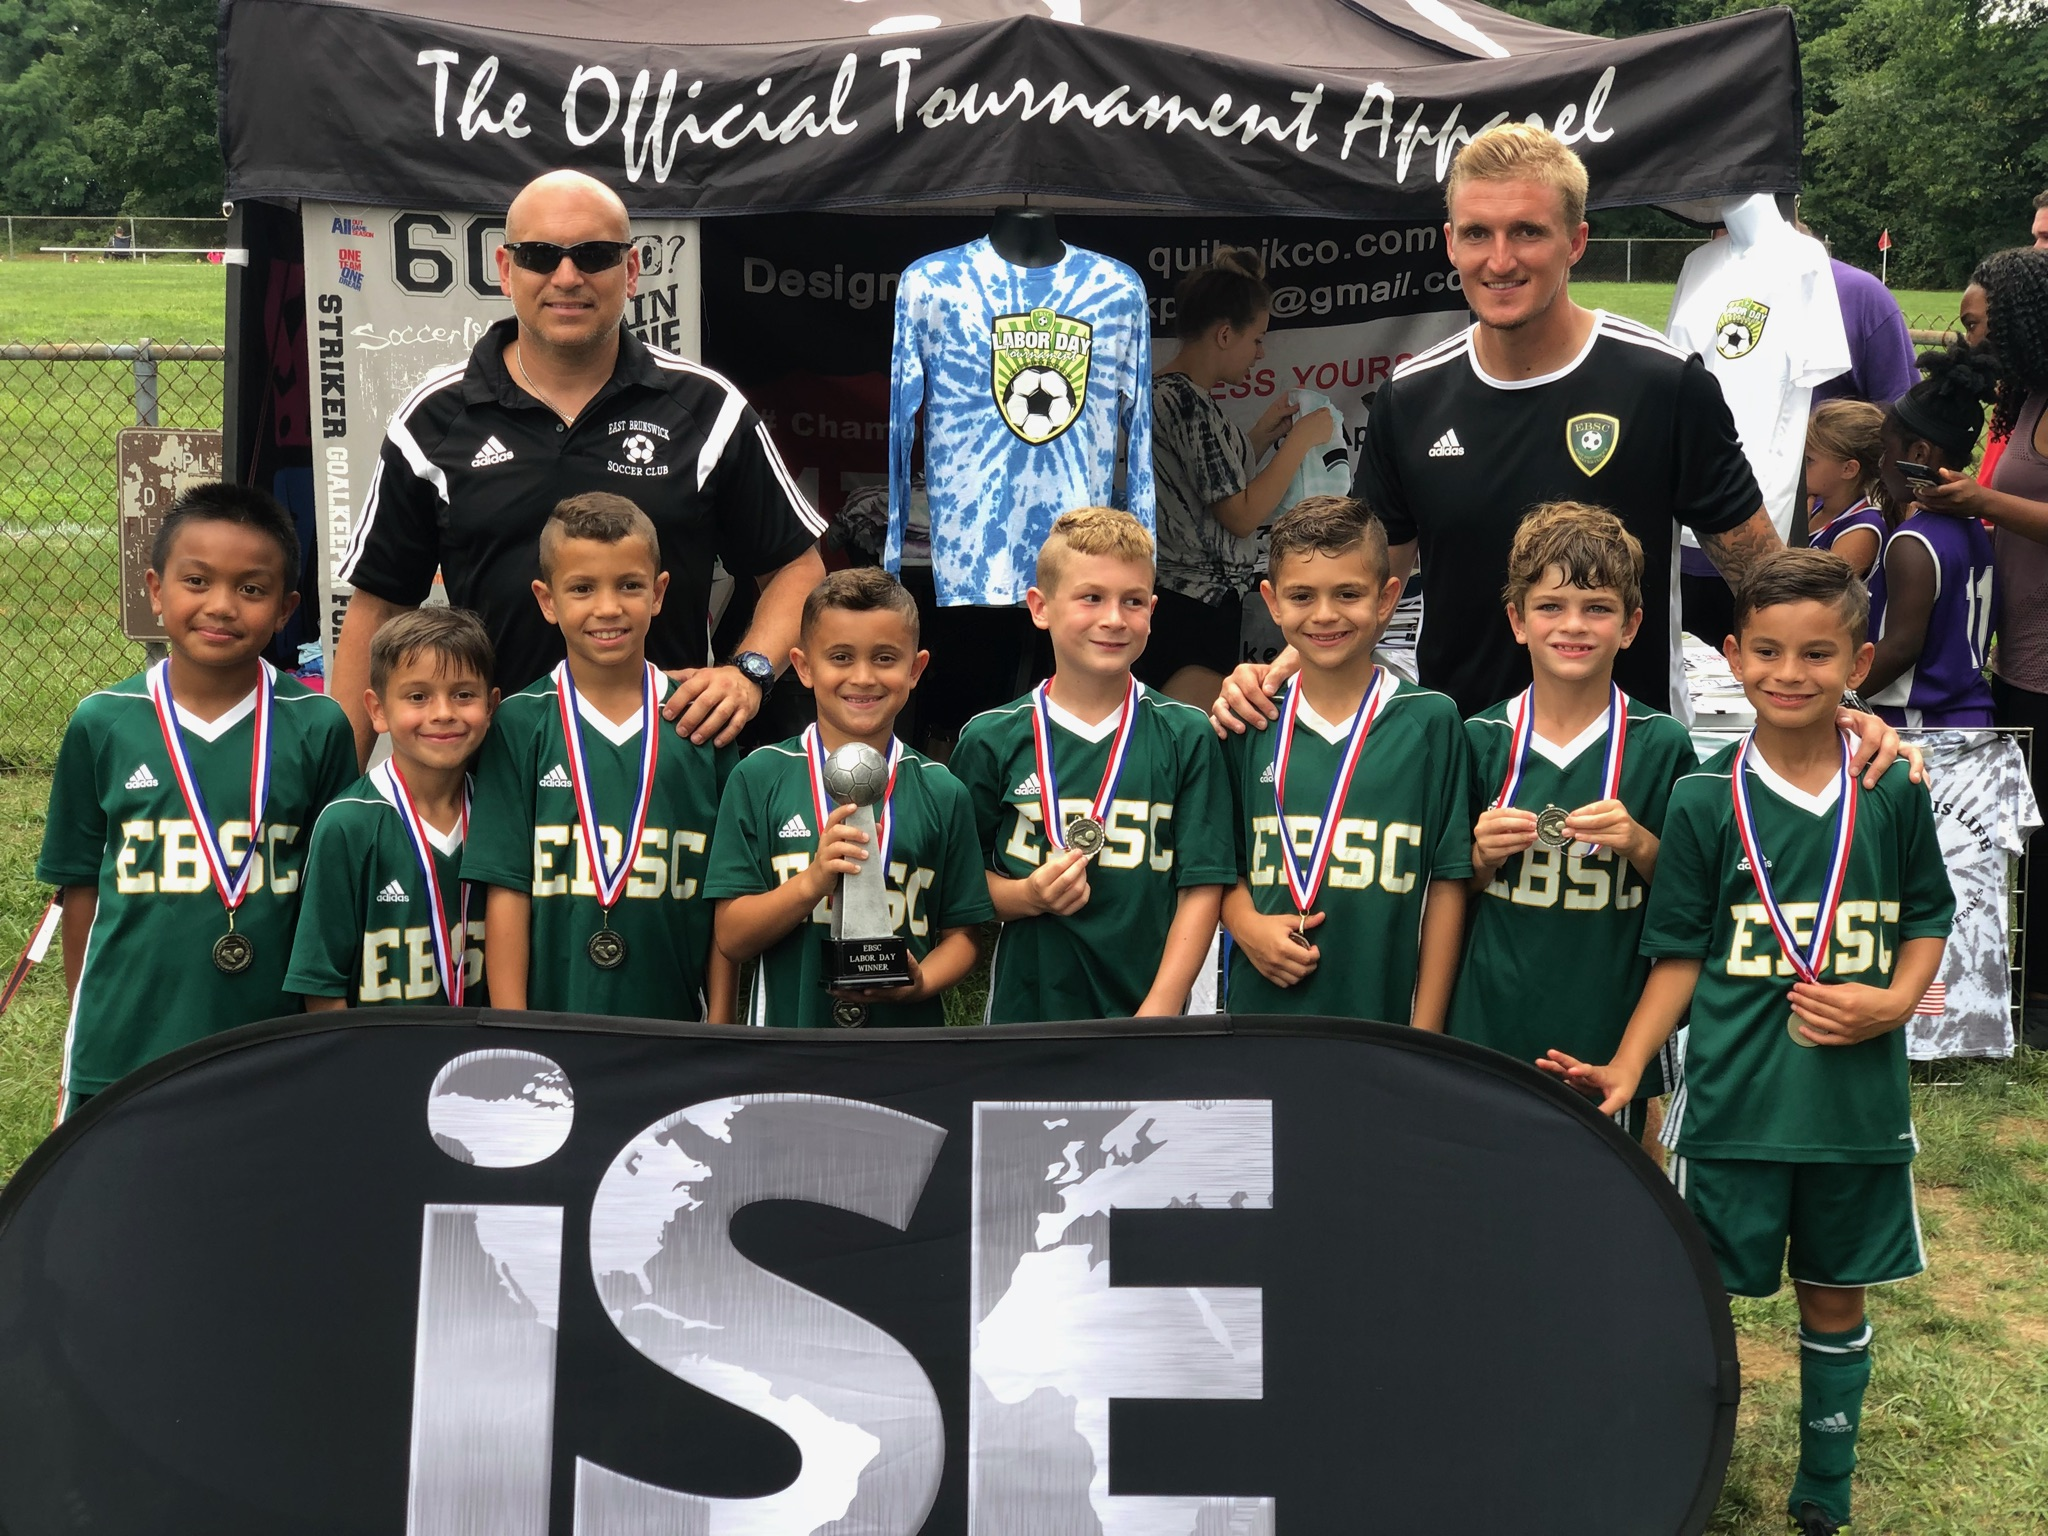 Congratulations to EBSC 2010 Barcelona Boys 2018 East Brunswick Labor Day Tournament Champions